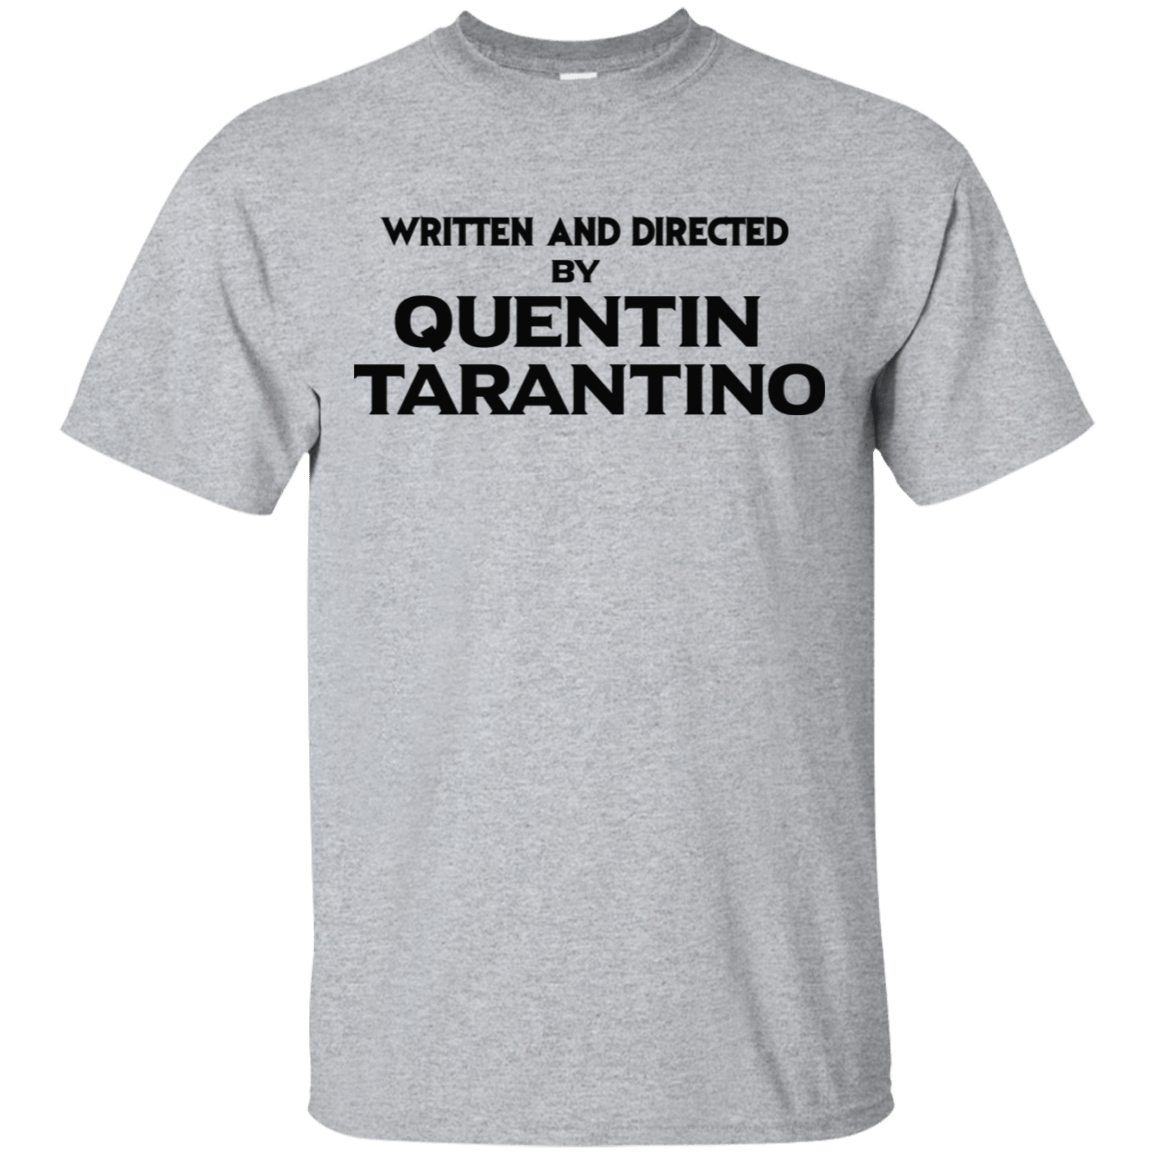 Written And Directed By Quentin Tarantino 22-115-71738998-254 - Tee Ript